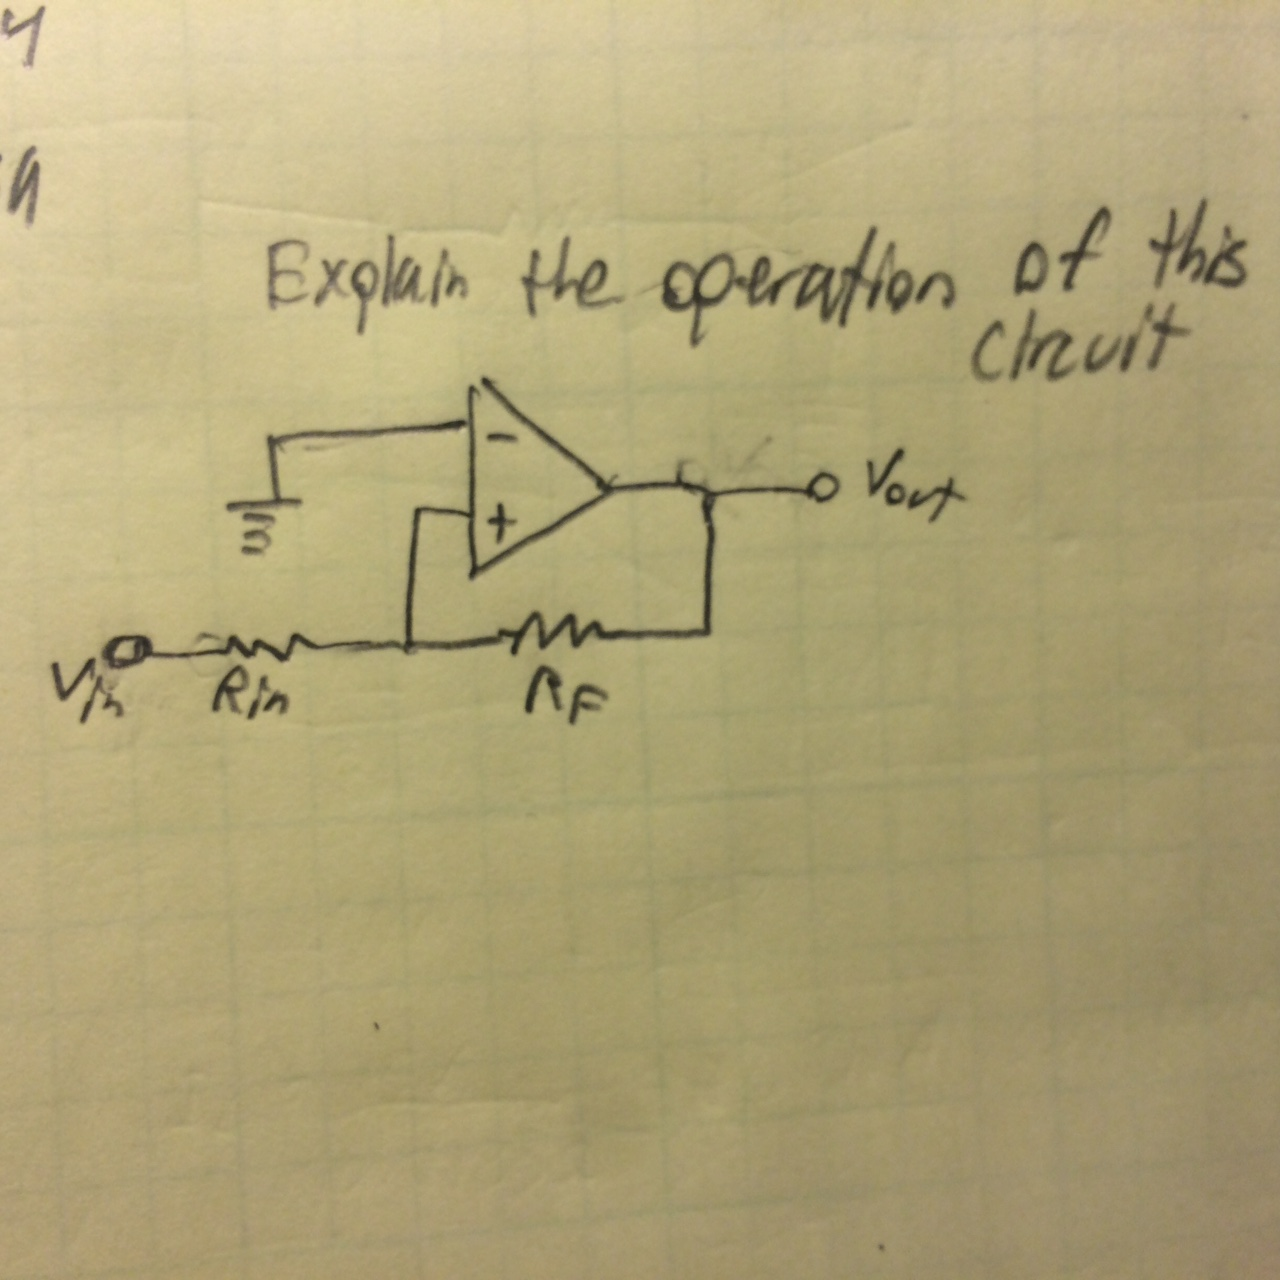 Explain the operation of this circuit